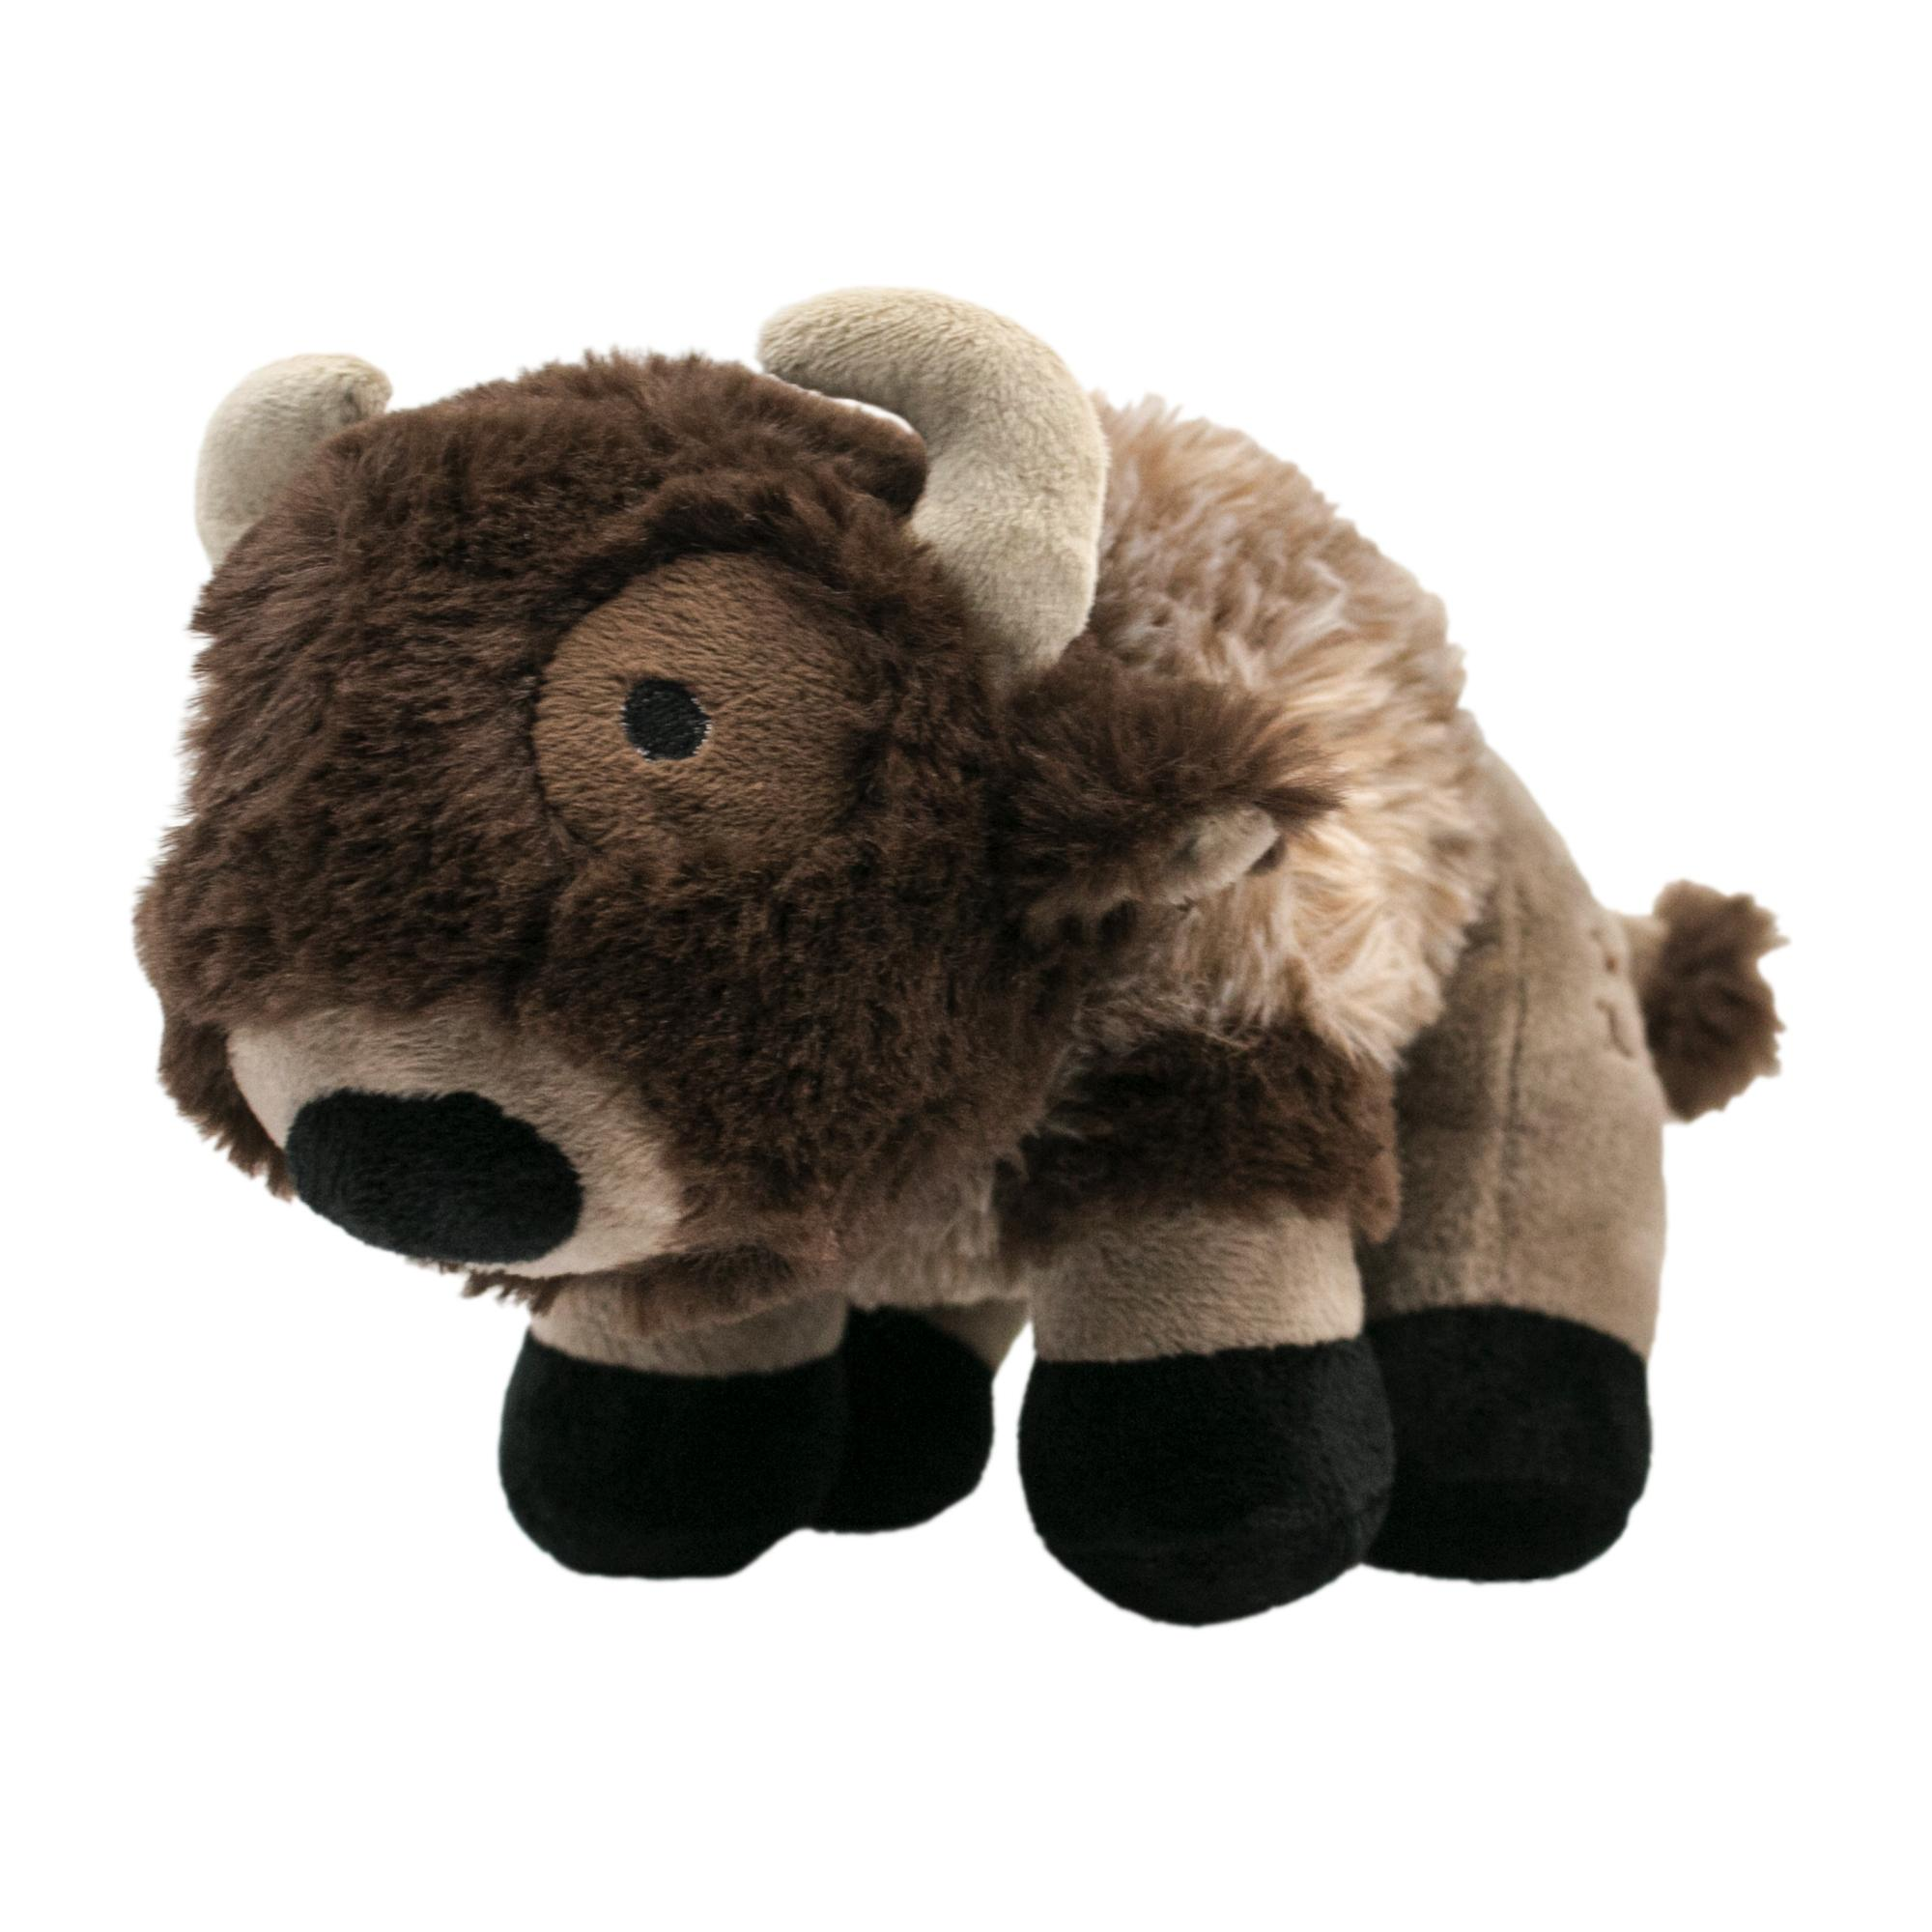 Tall Tails Buffalo Squeaker Dog Toy, 9-in (Size: 9-in) Image